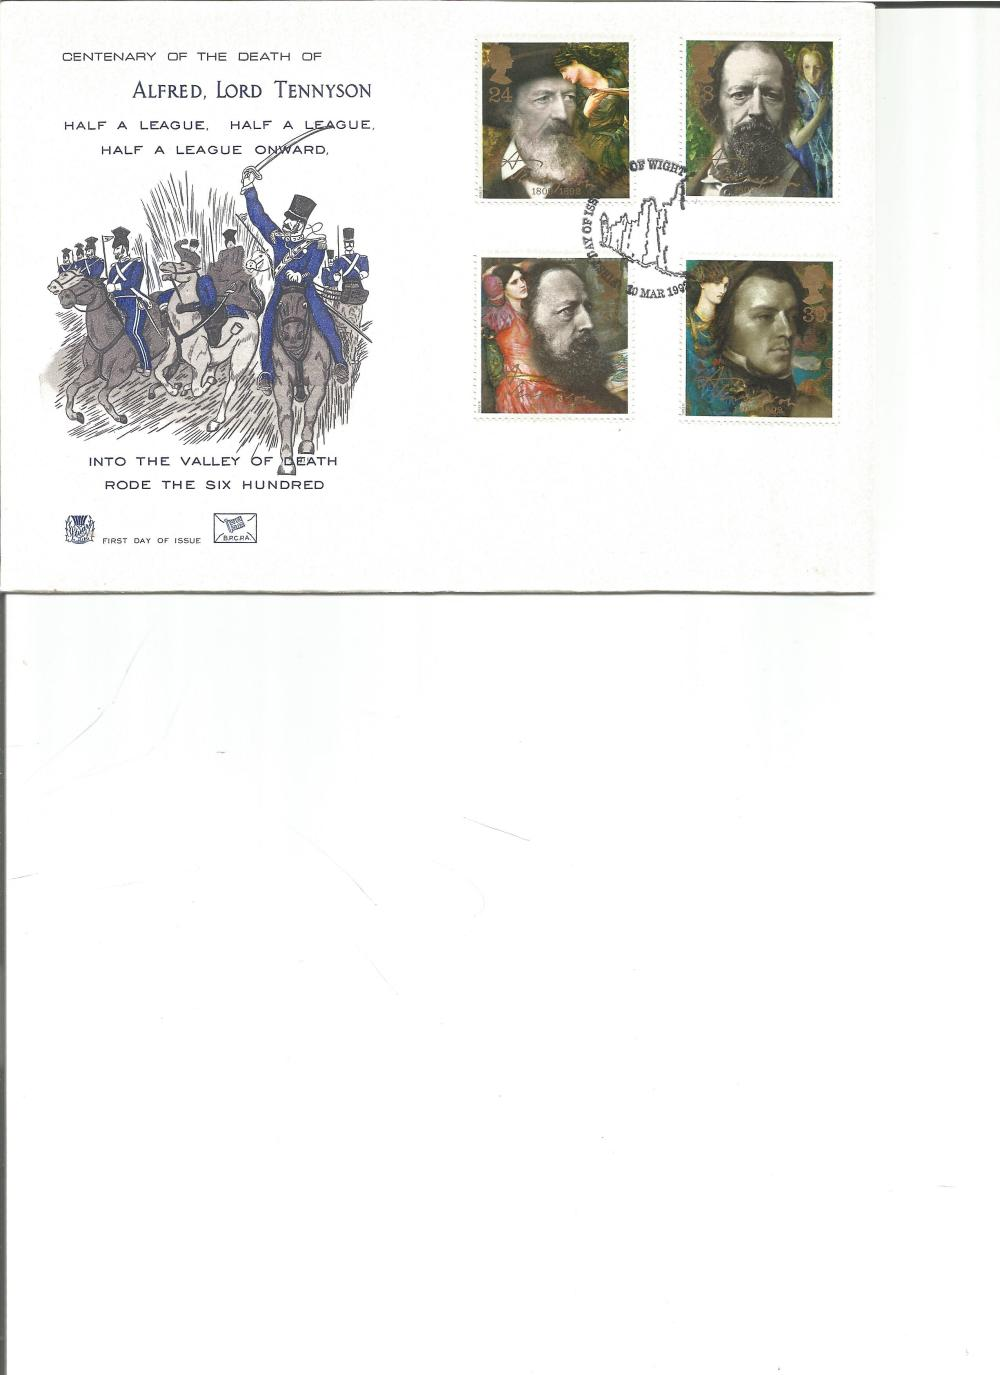 FDC Centenary of the Death of Alfred Lord Tennyson , Half A League, Half a League , Half a League